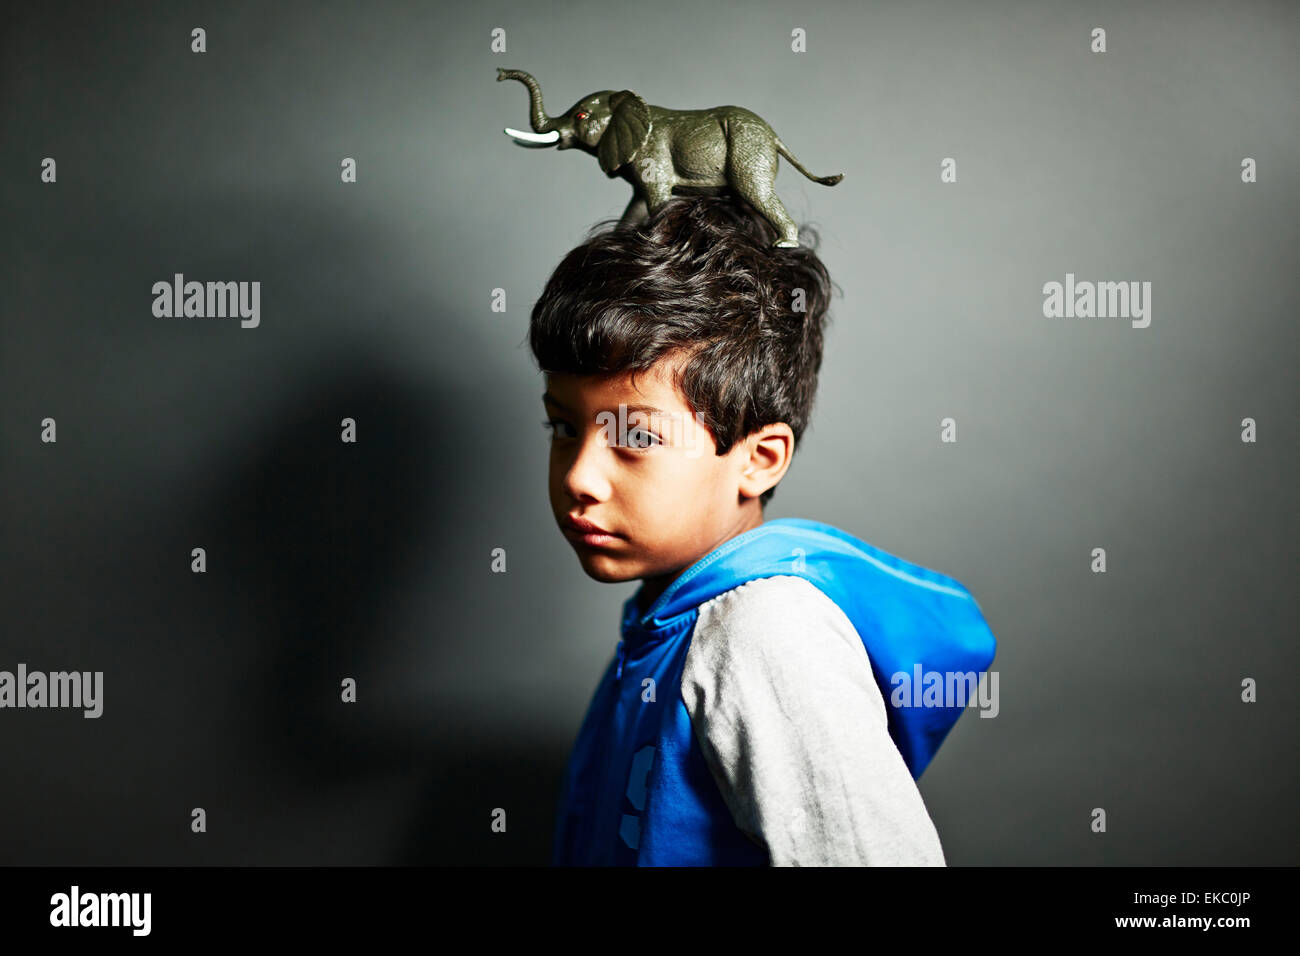 Boy with elephant ornament on top of head - Stock Image